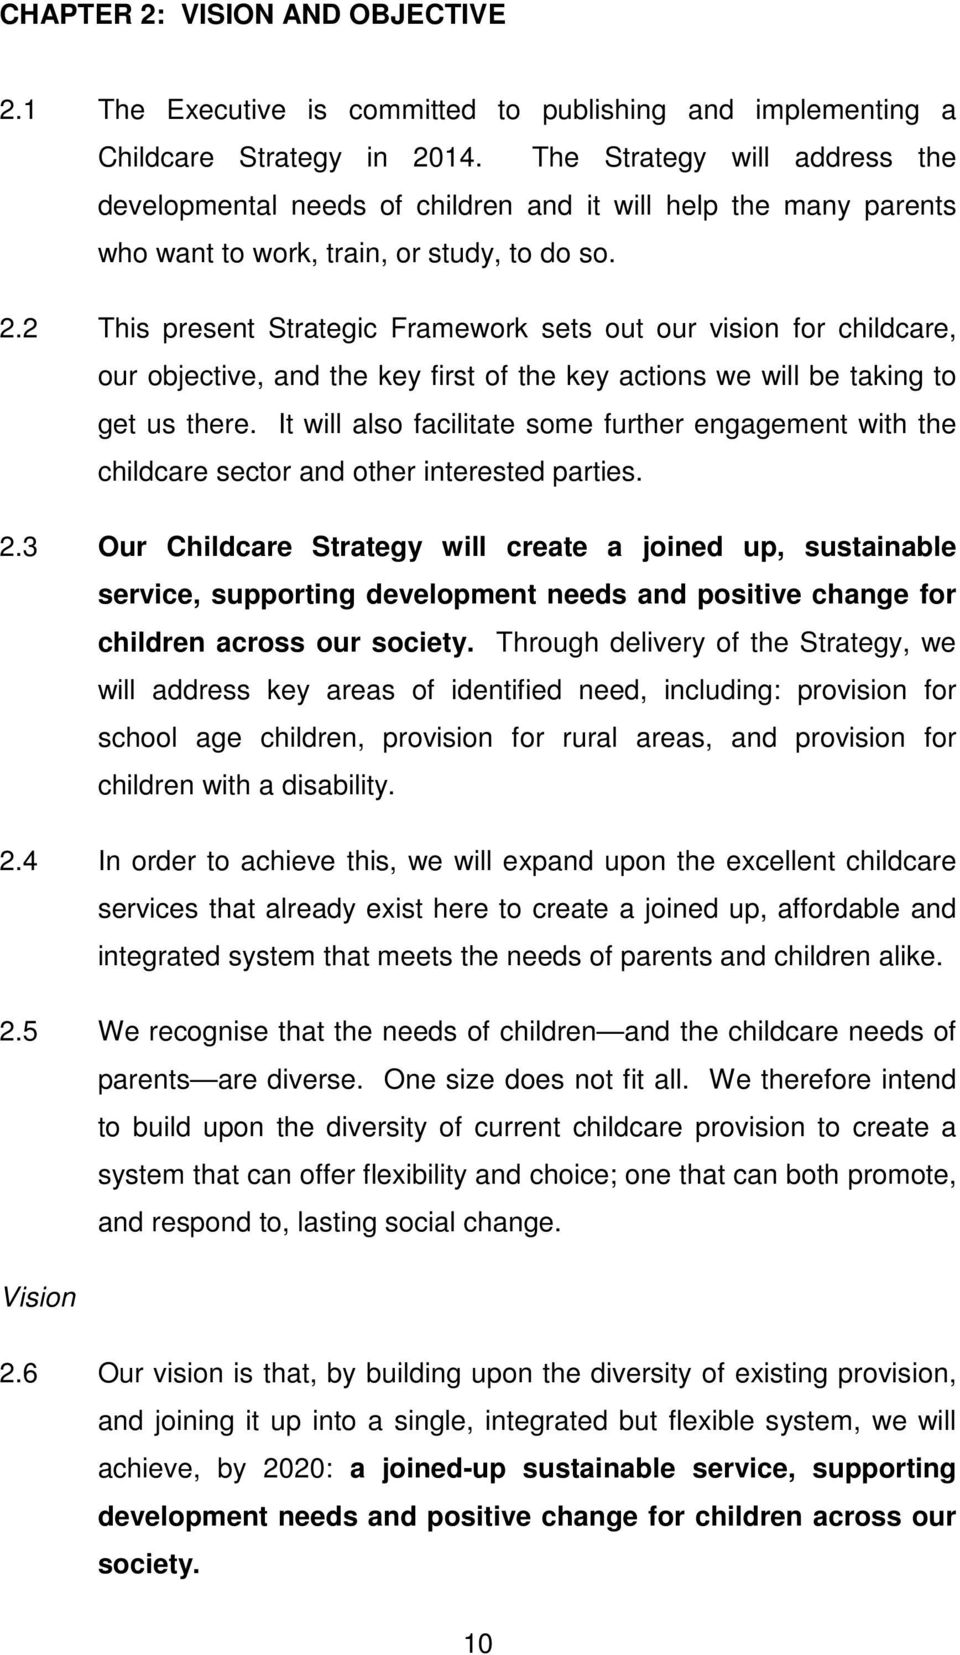 2 This present Strategic Framework sets out our vision for childcare, our objective, and the key first of the key actions we will be taking to get us there.